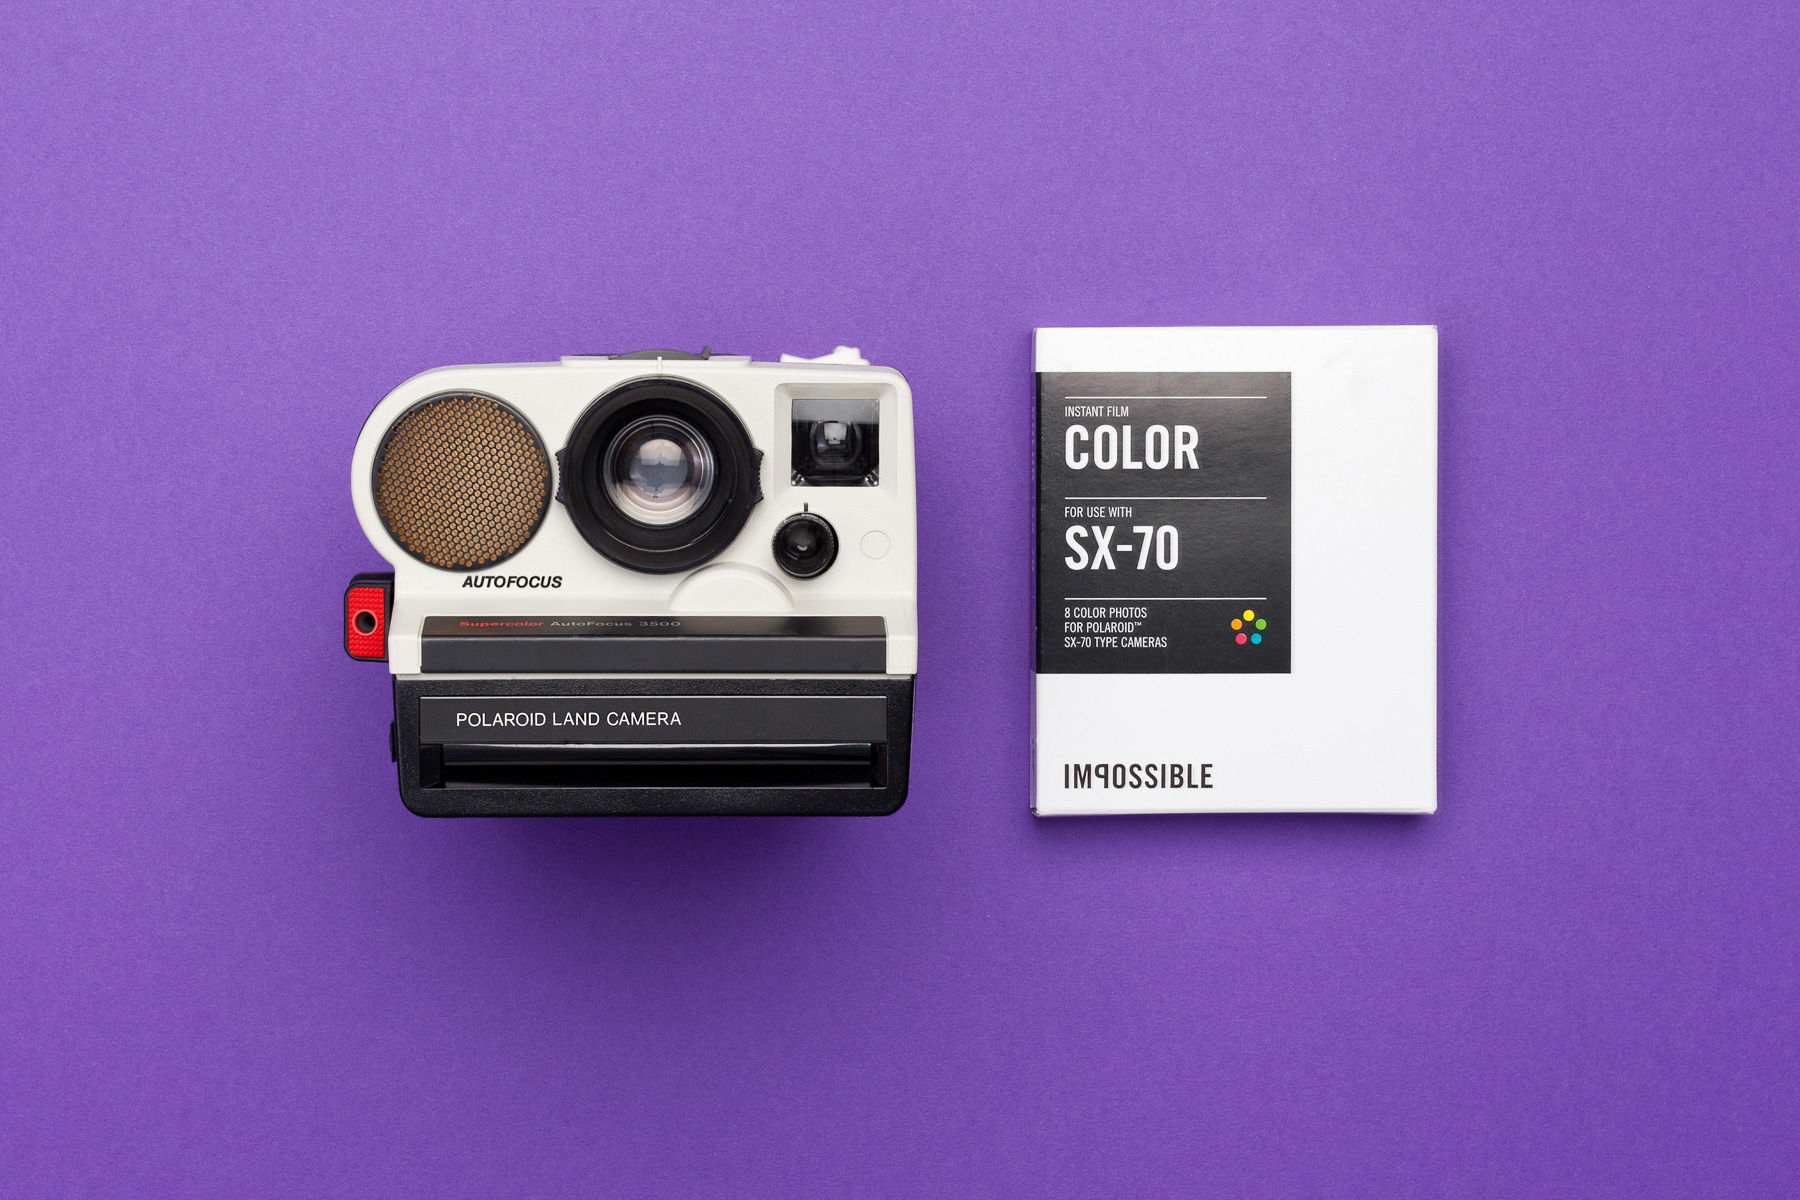 Capture Collect Photography London - Hikaru Funnell - Still Life Product Photography - Polaroid SX-70.jpg